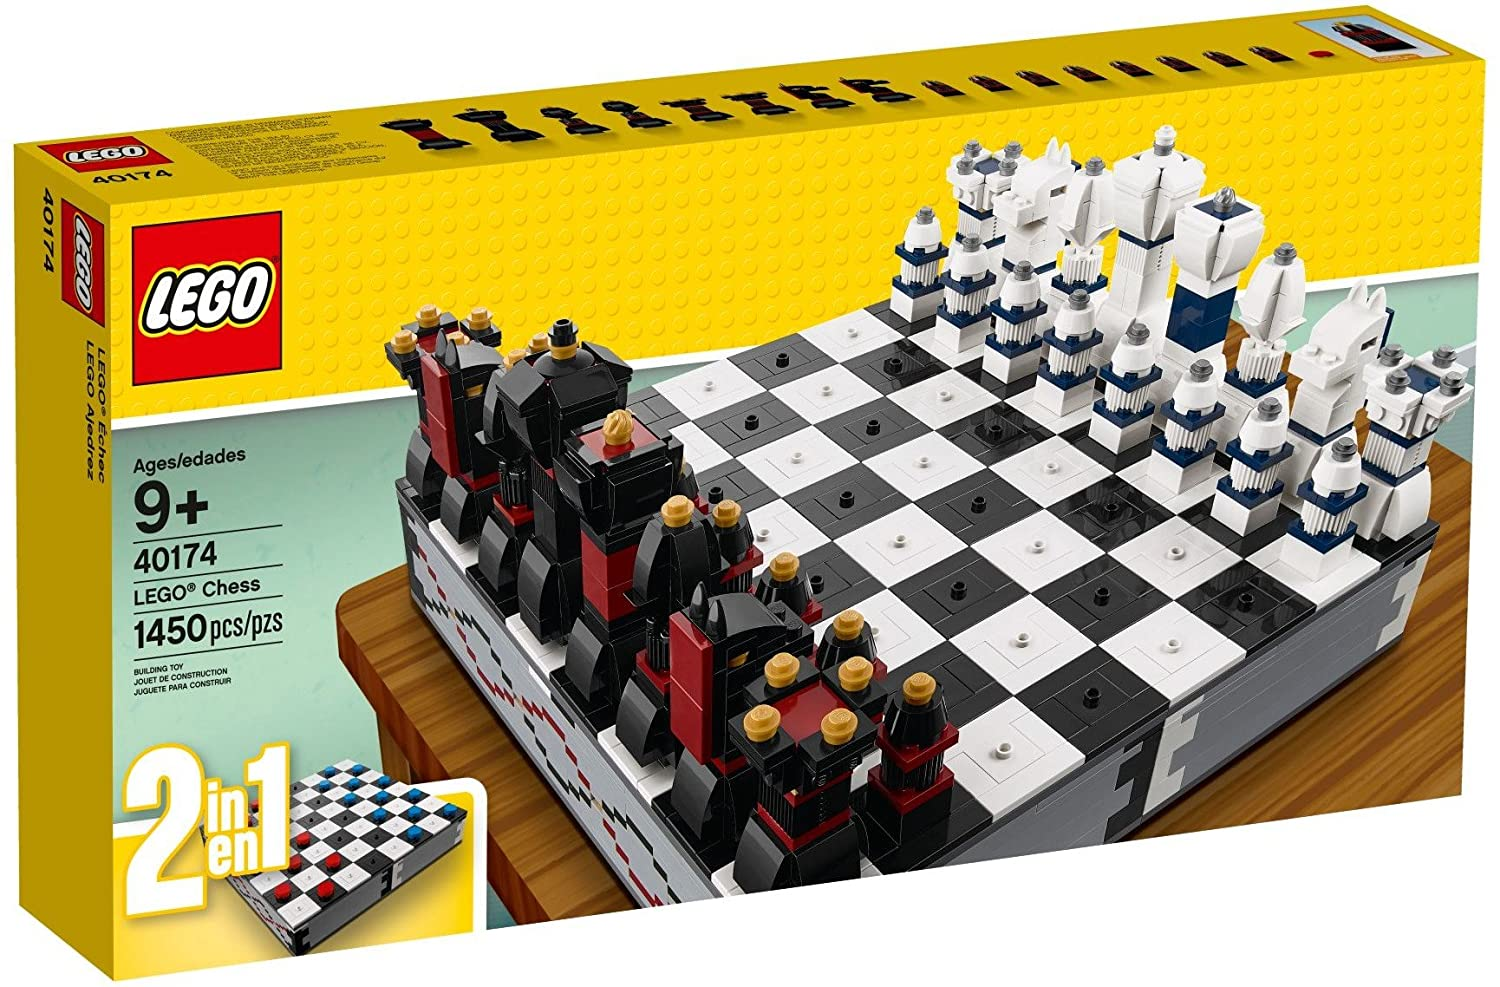 LEGO - Iconic Chess Set / Checkers (40174) 2 in 1 Building Toy